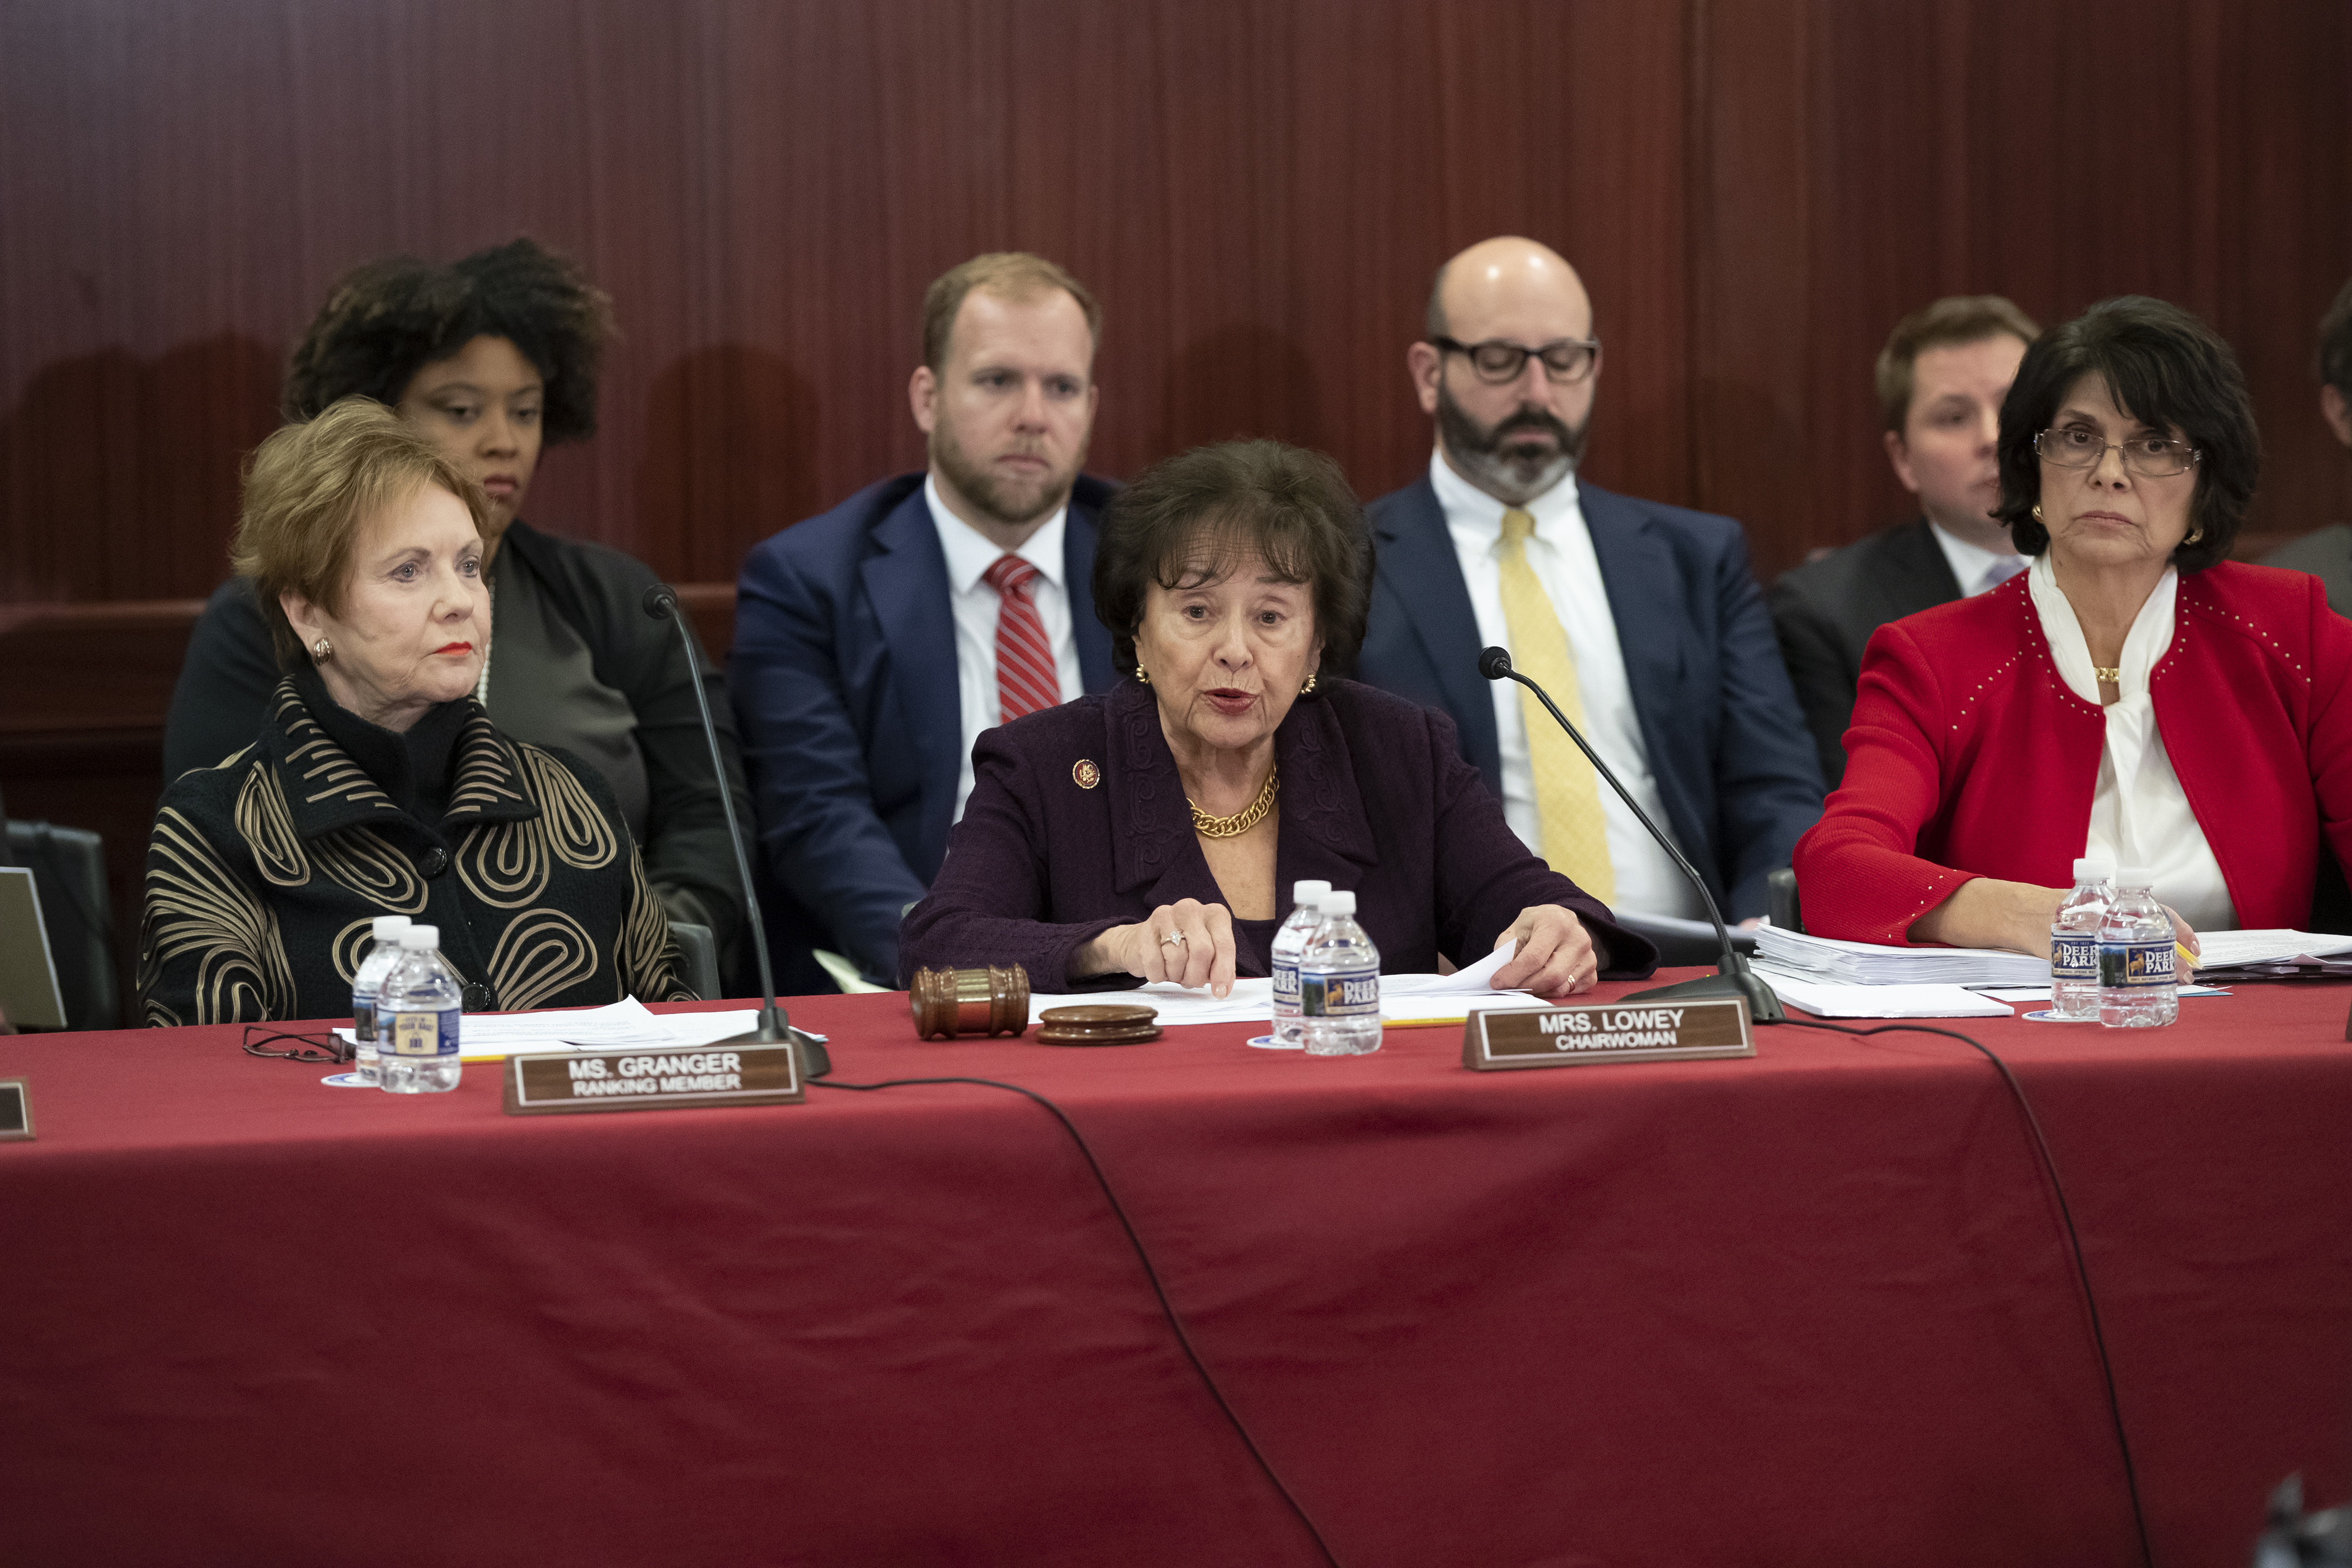 House Appropriations Committee Chair Nita Lowey, D-N.Y., center, flanked by Rep. Kay Granger, R-Texas, ranking member of the House Appropriations Committee, left, and Rep. Lucille Roybal-Allard, D-Calif., chair of the House Appropriations Committee's...